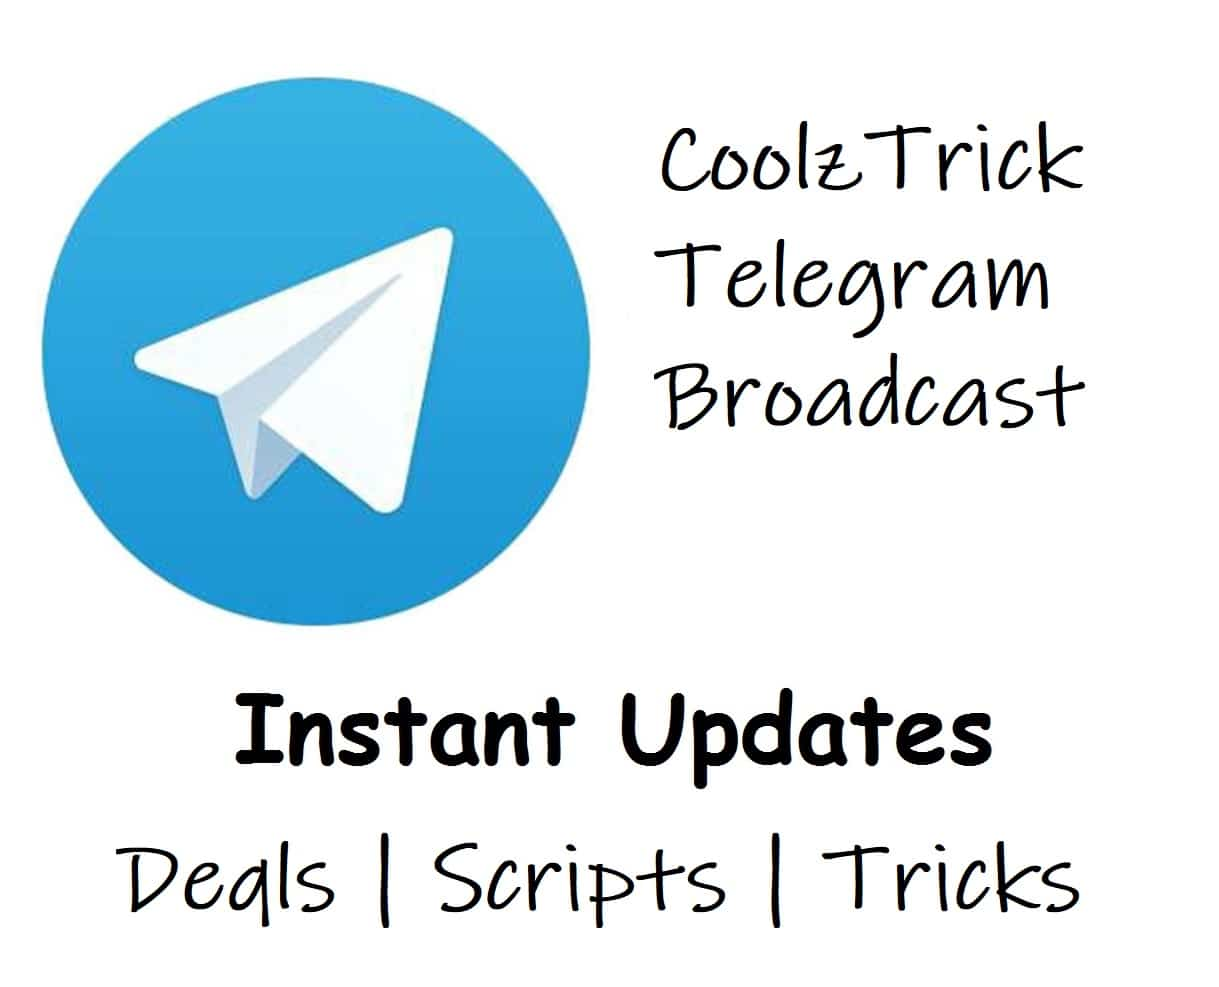 Join coolztrick telegram channel to get latest deals loots instantly loots offers and tricks we ensure you to share a latest and working deals at super fast speed so just join the telegram group and enjoy the loots ccuart Gallery